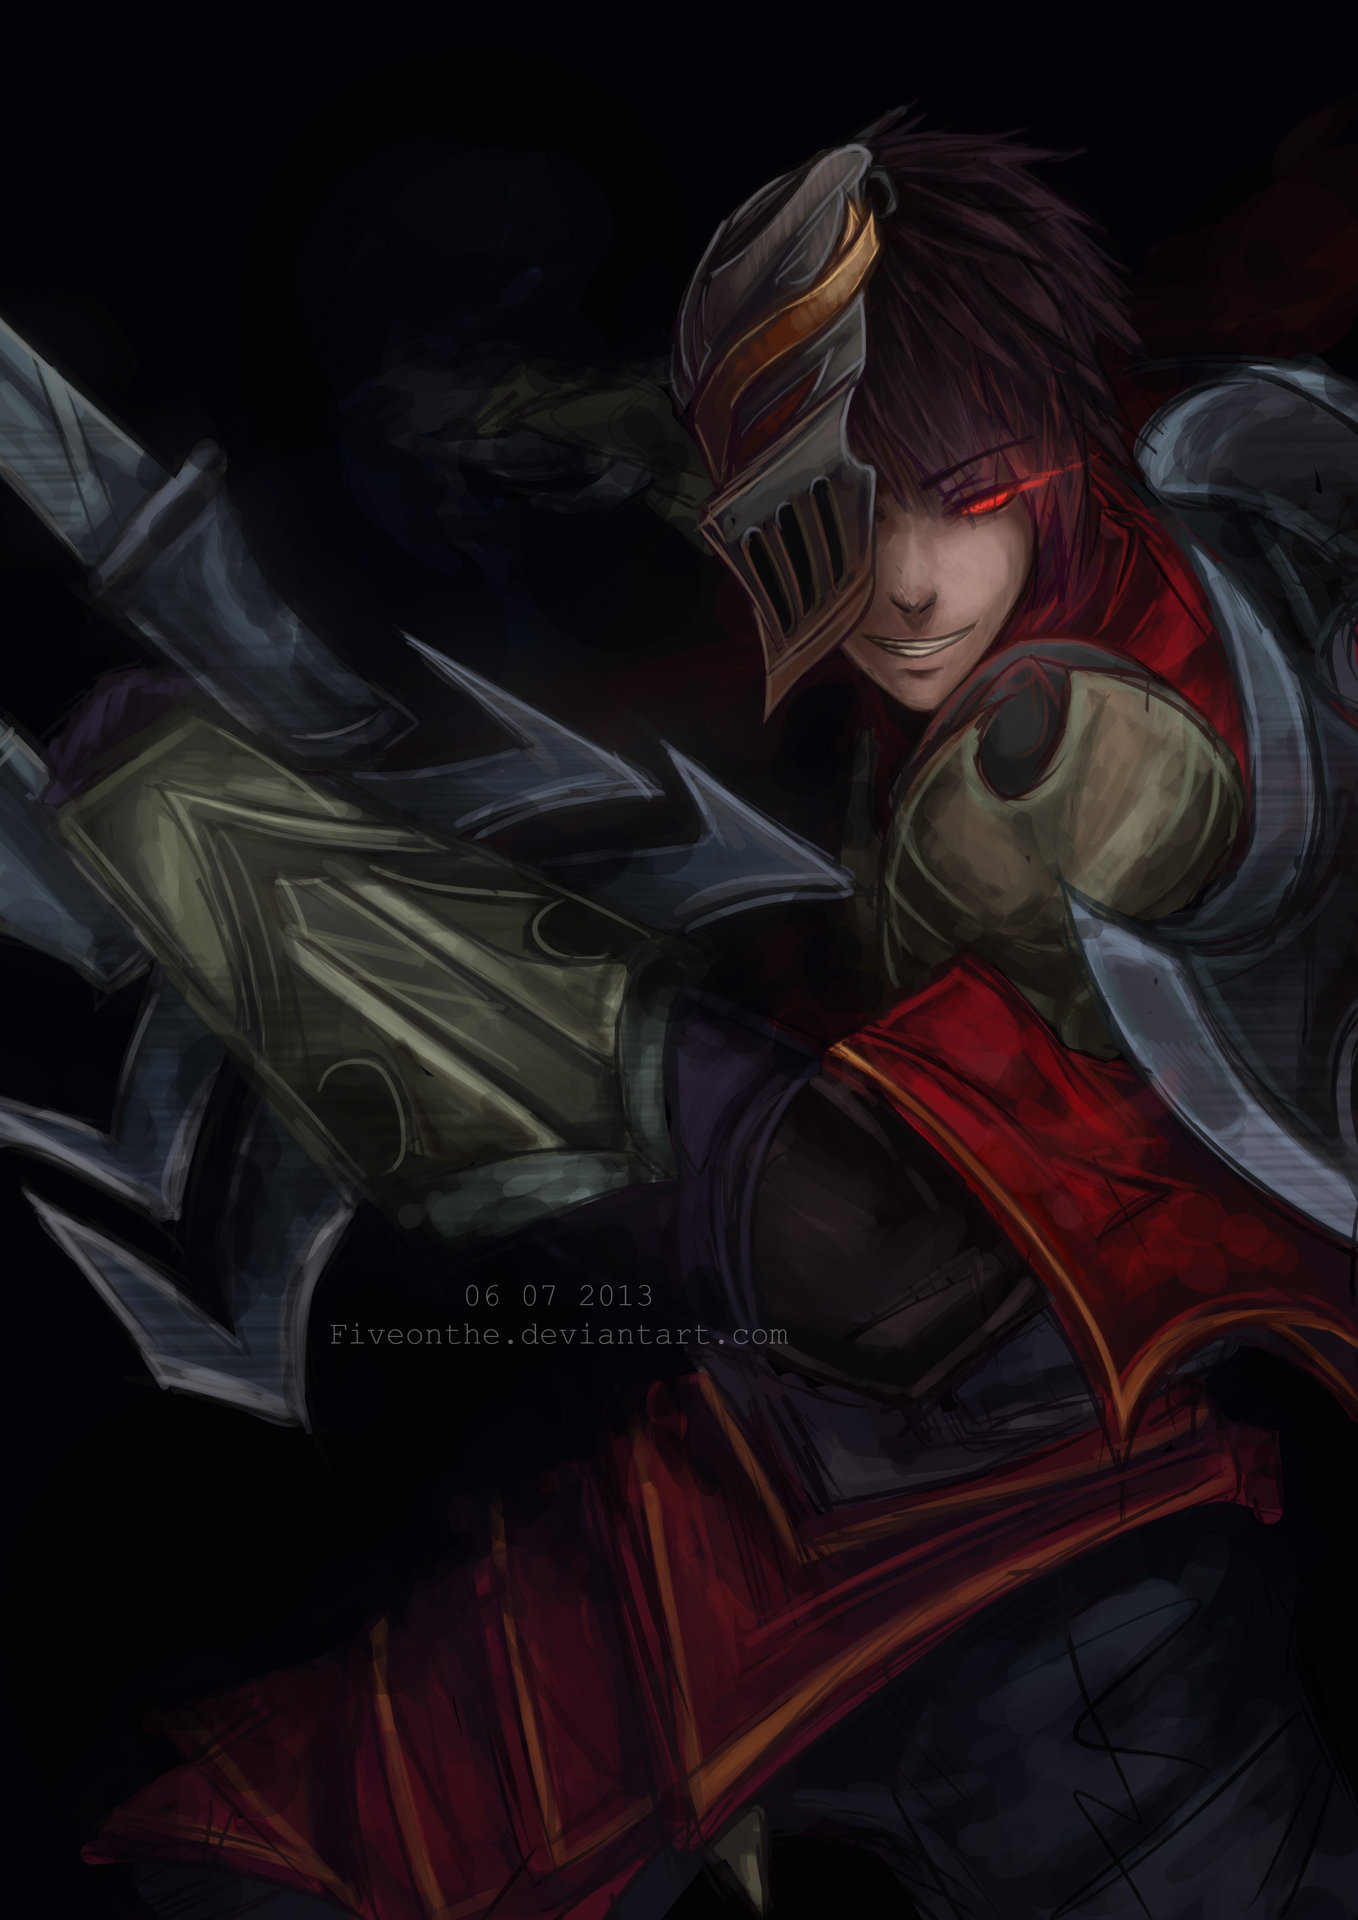 Zed master of shadows pls take me 06072013